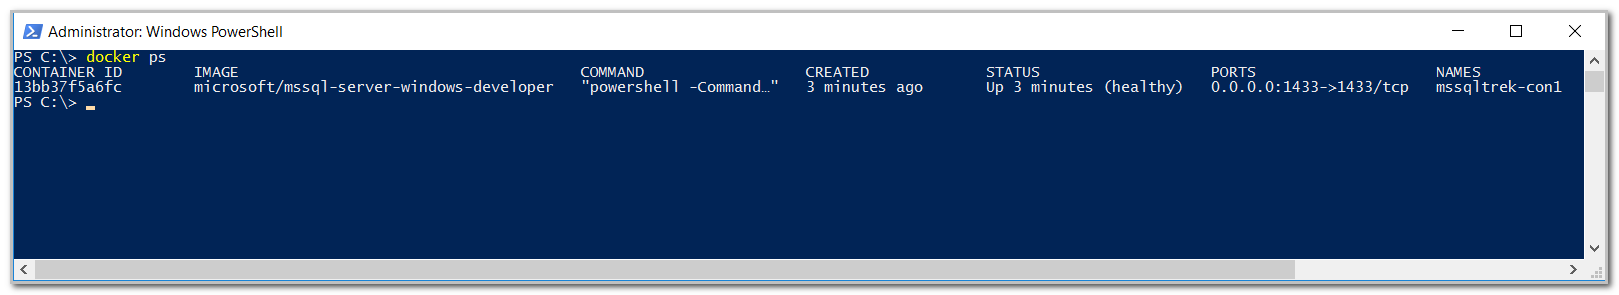 verify the status of docker container from powershell.